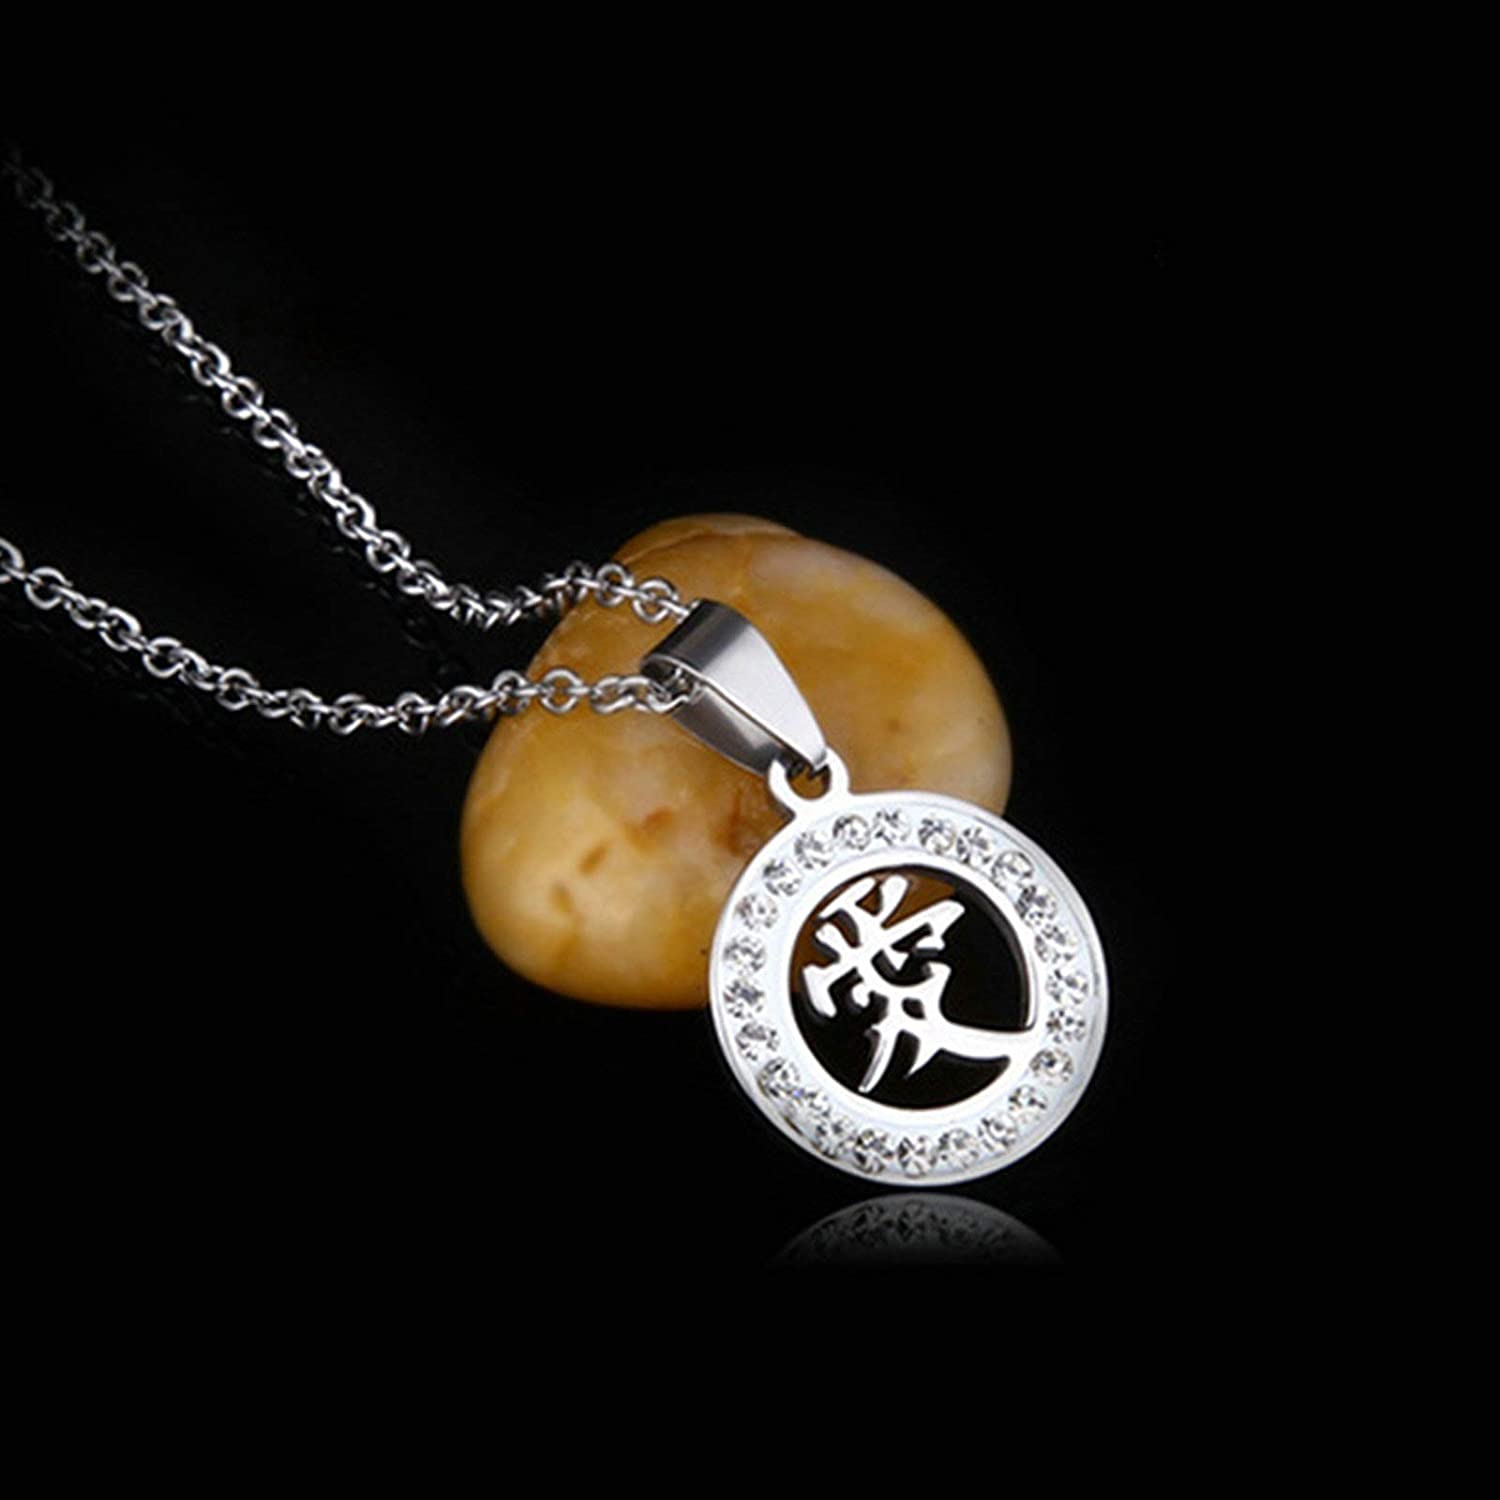 Aooaz Stainless Steel Necklace Biker Round Pendant Hip Hop Necklace